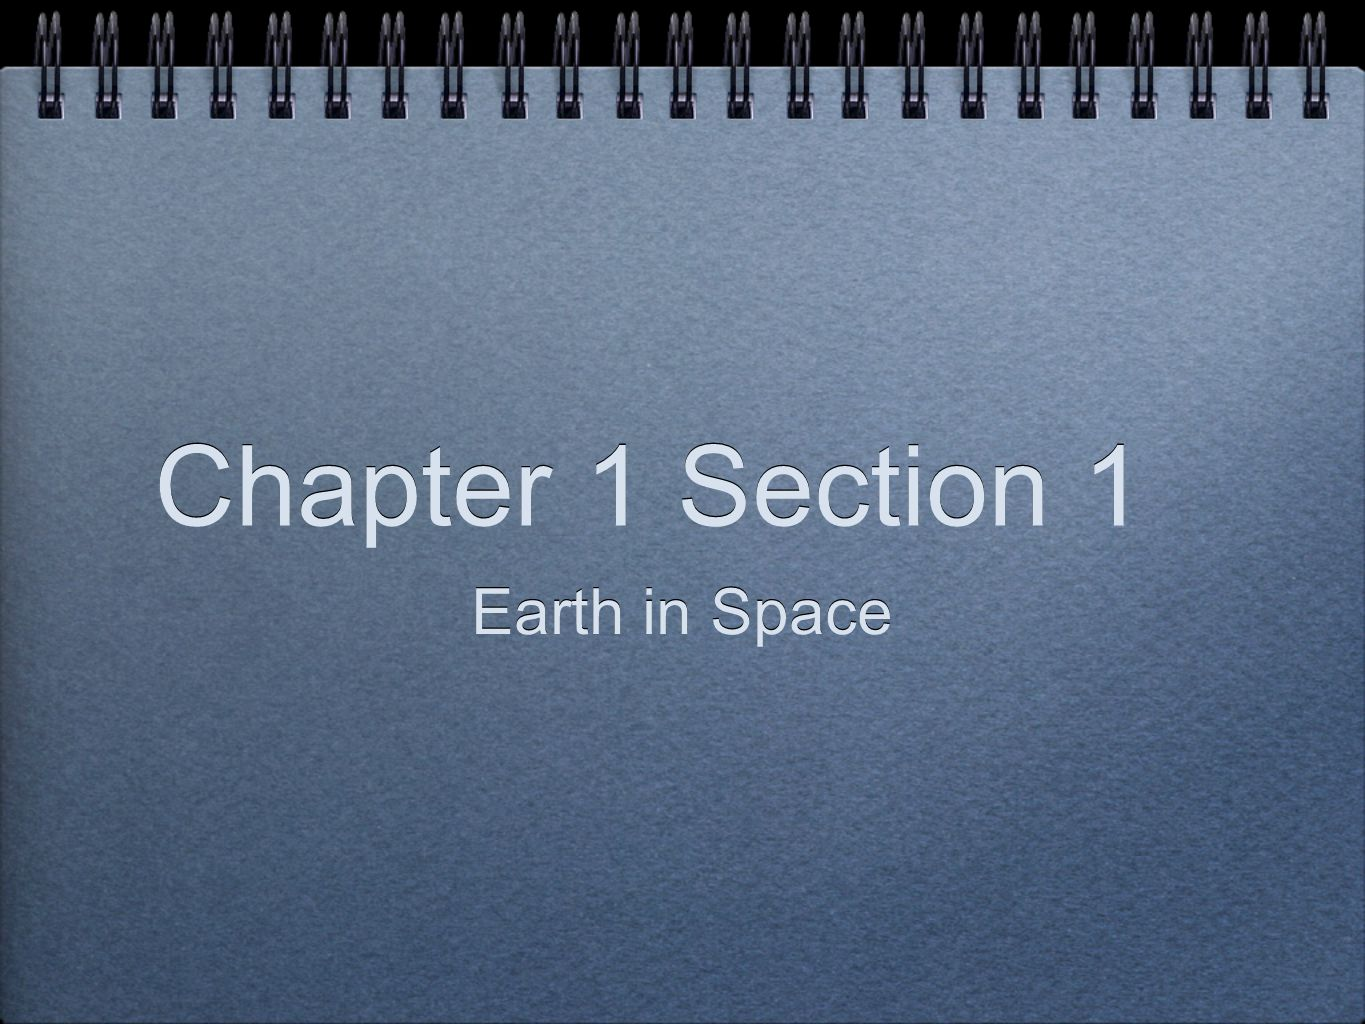 Chapter 1 Section 1 Earth in Space